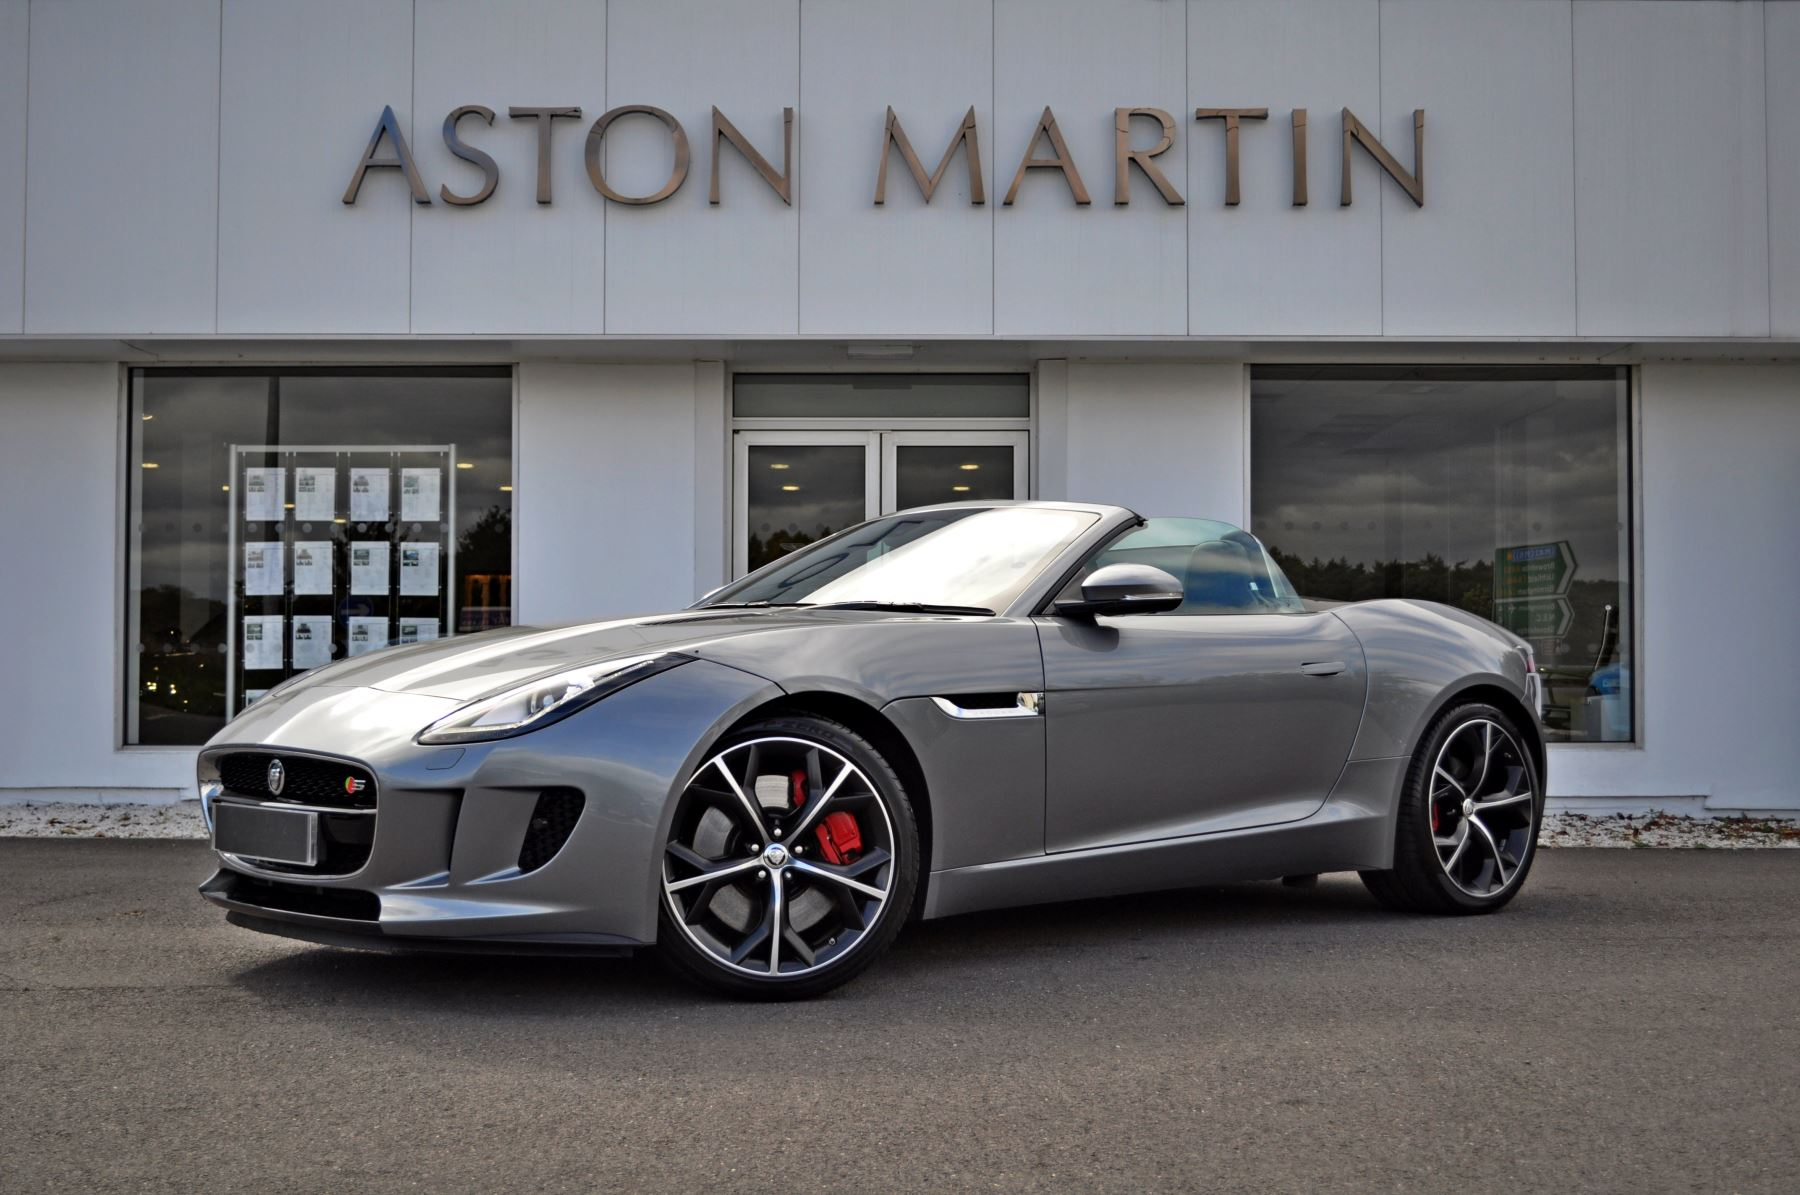 Jaguar F-TYPE 3.0 Supercharged V6 S 2dr Automatic Convertible (2014)